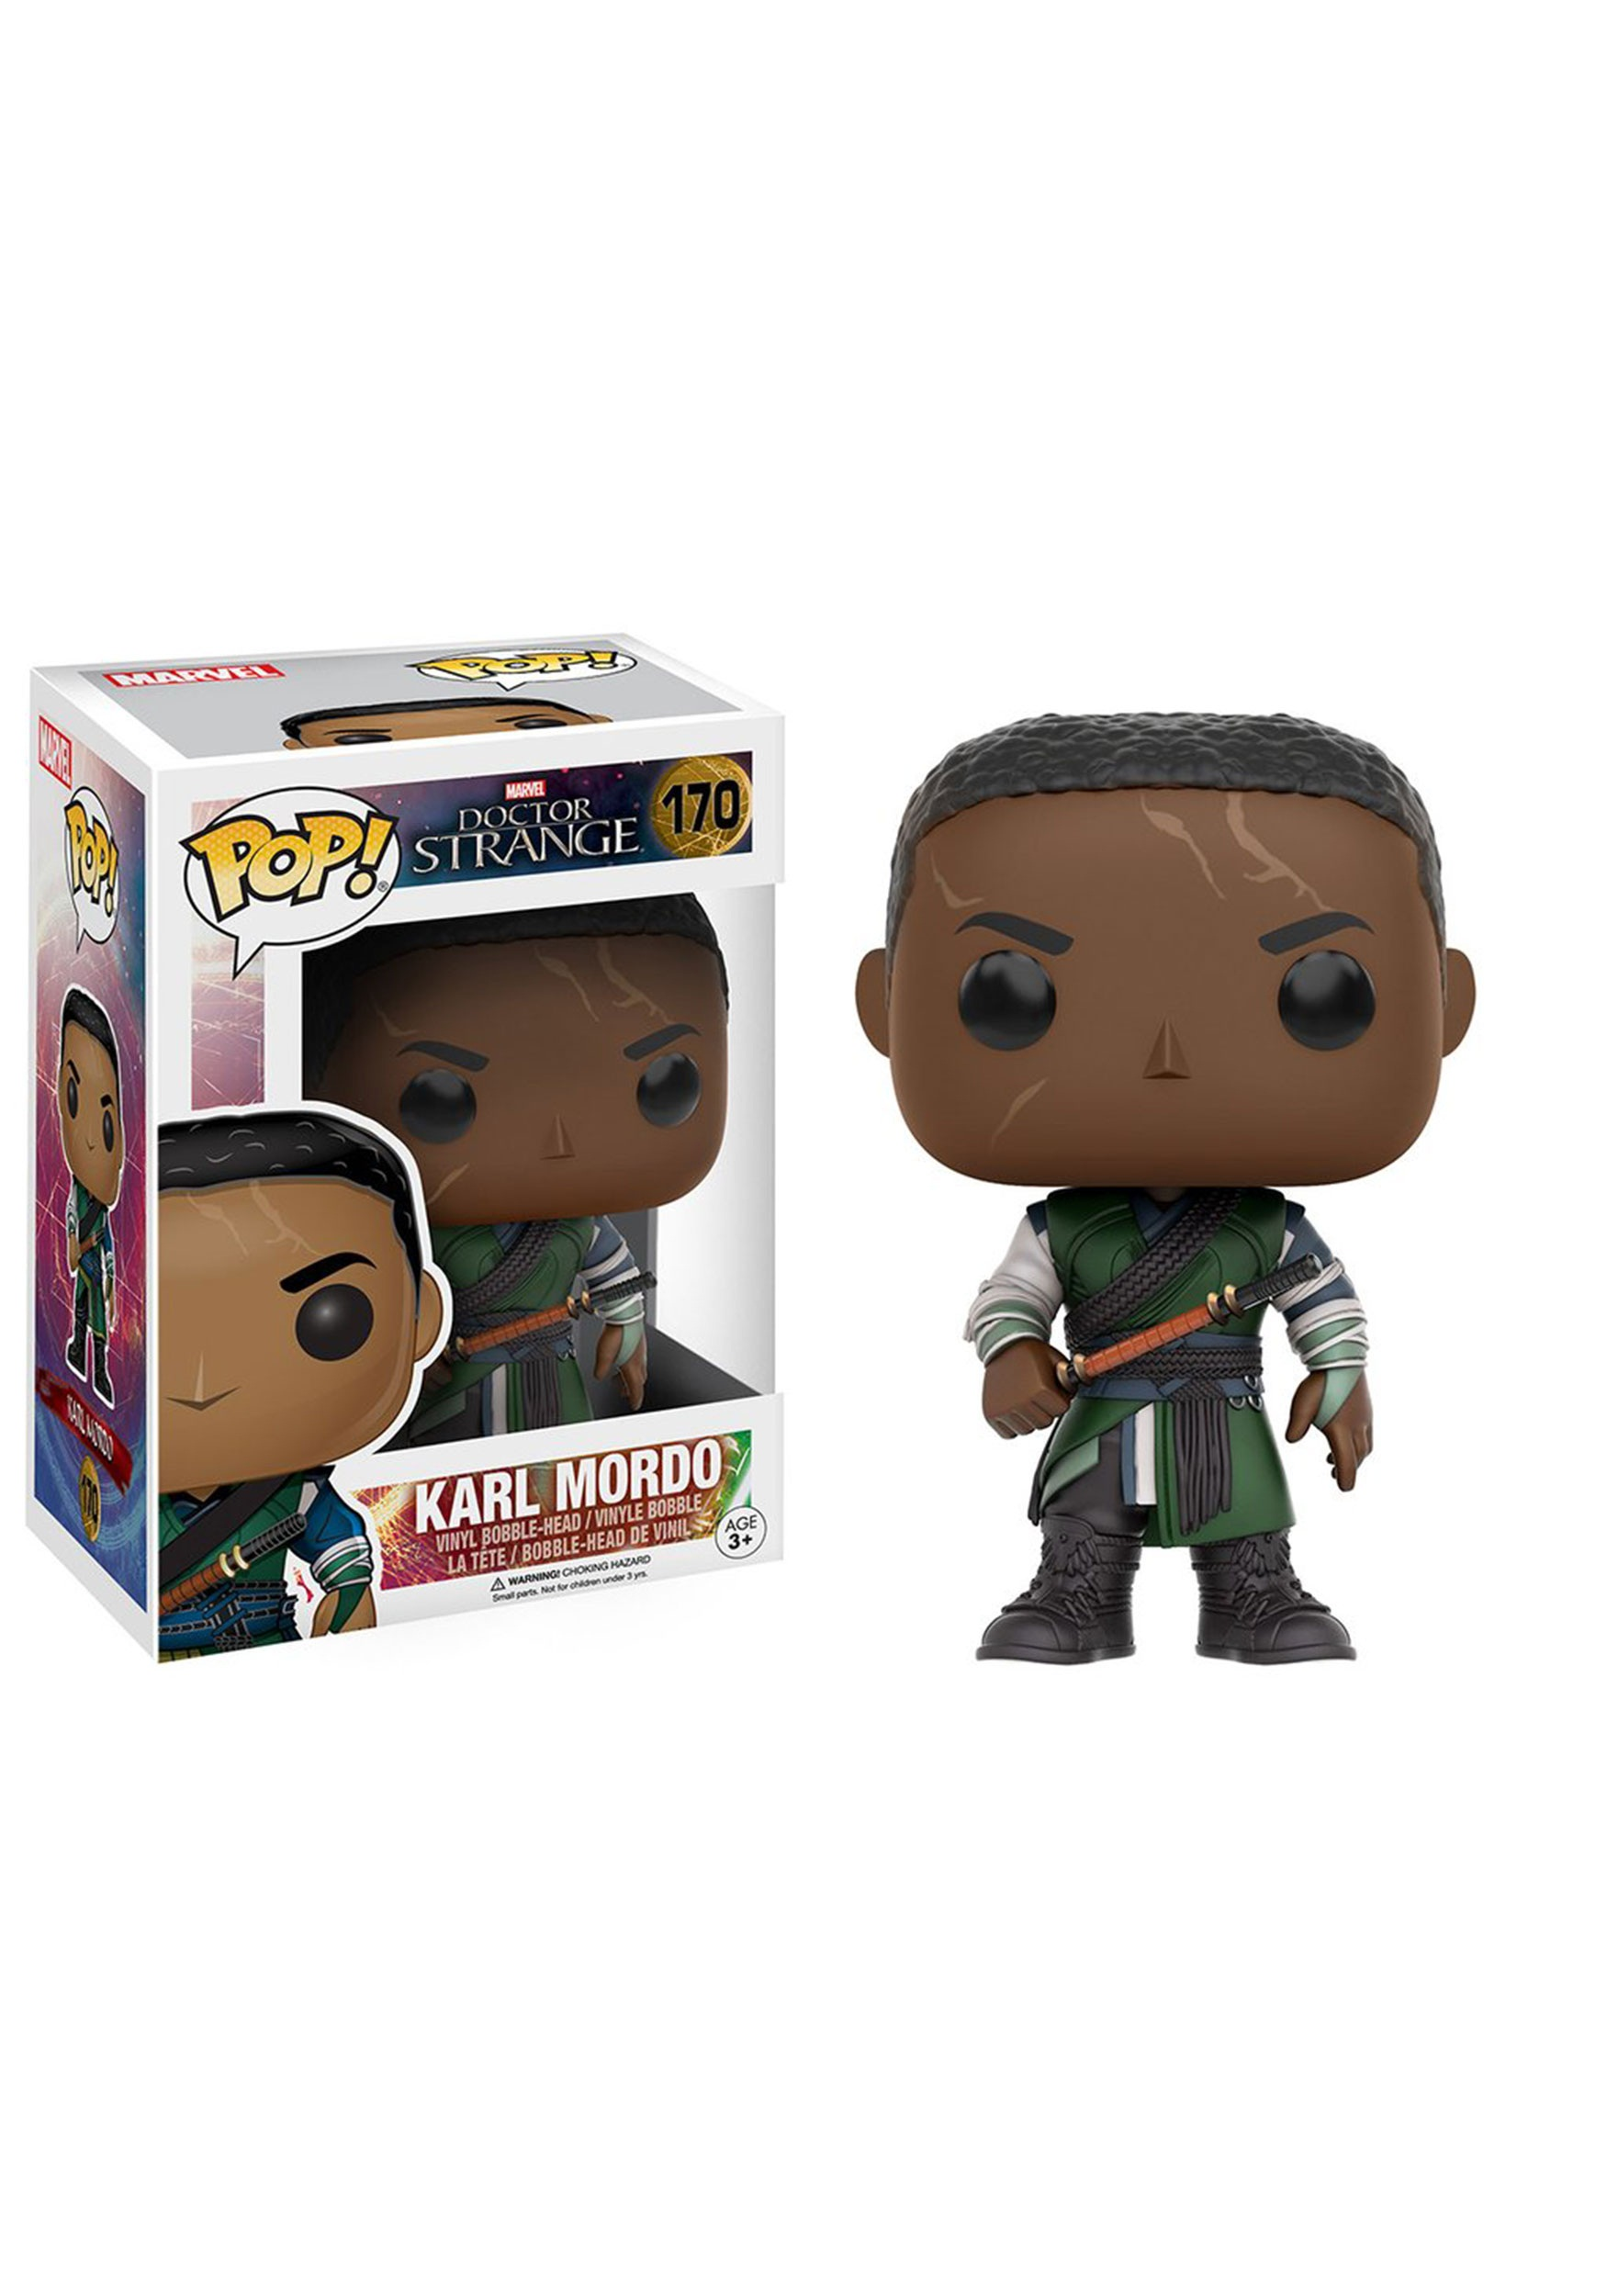 Marvel Doctor Strange Karl Mordo POP  Bobblehead Figure FN9745